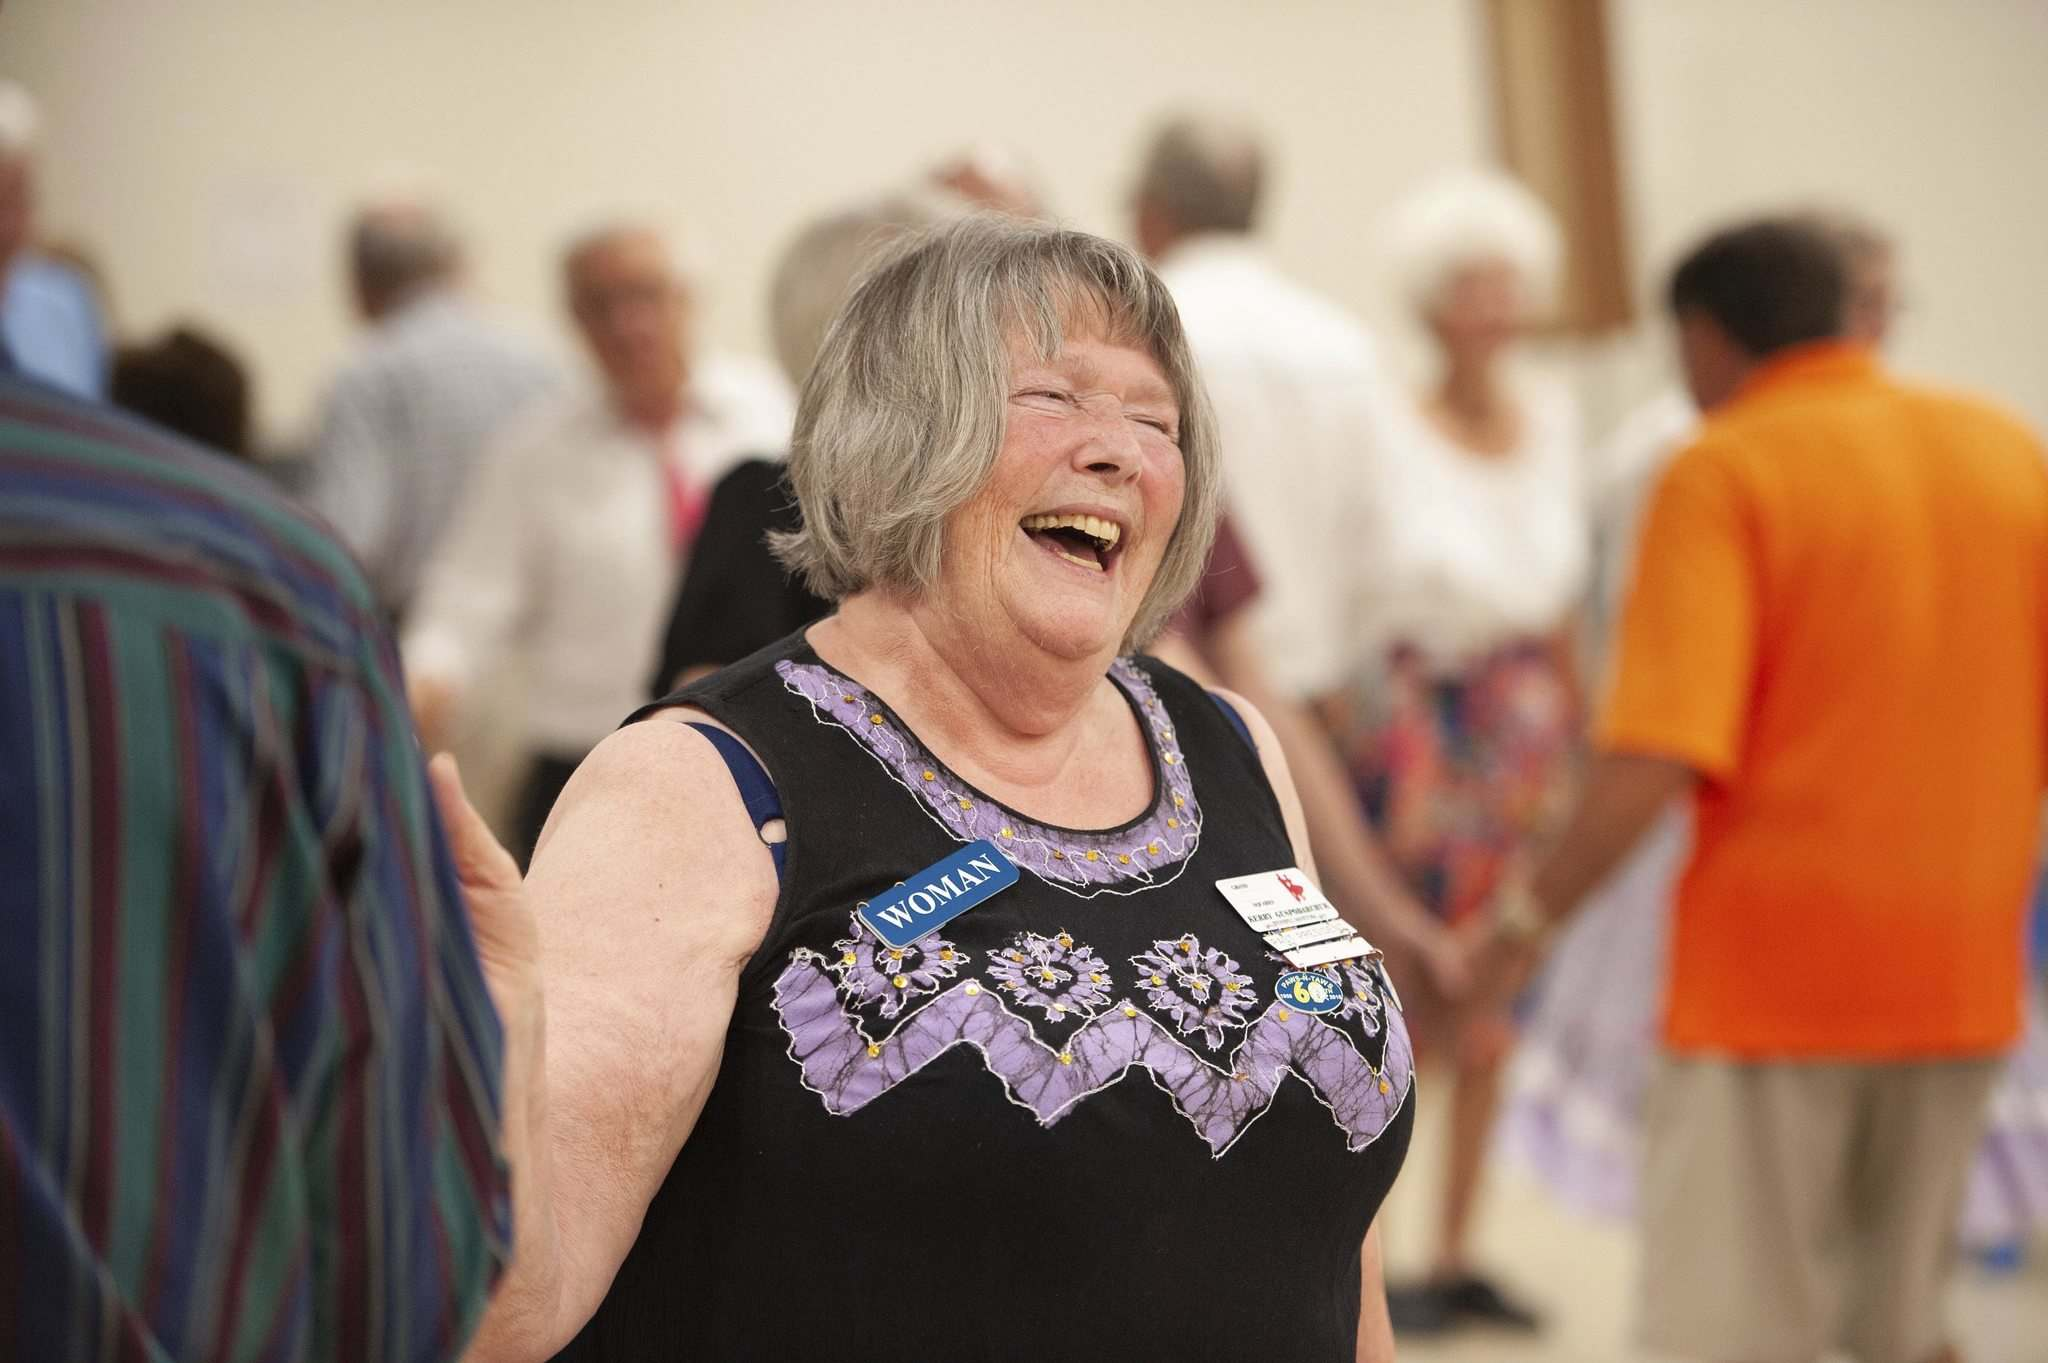 MIKE SUDOMA / WINNIPEG FREE PRESS</p><p>Kerry Guspordarchuk isn't alone in having a good time at the weekly gathering of square dancing enthusiasts.</p>